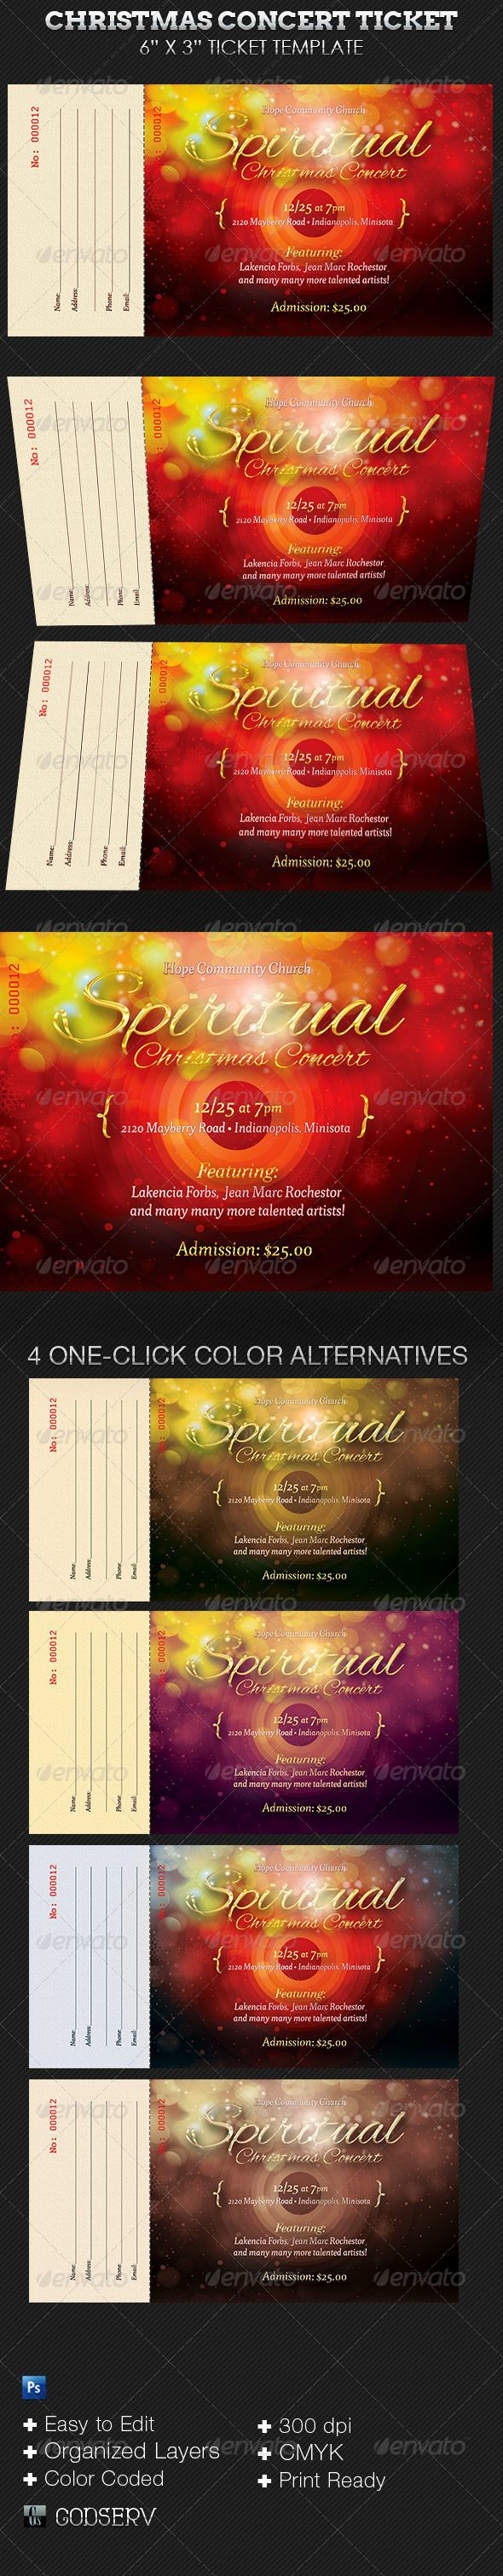 Concert Ticket Template Free Download Captivating 14 Best Layoutstext And Images Images On Pinterest  Brochures .